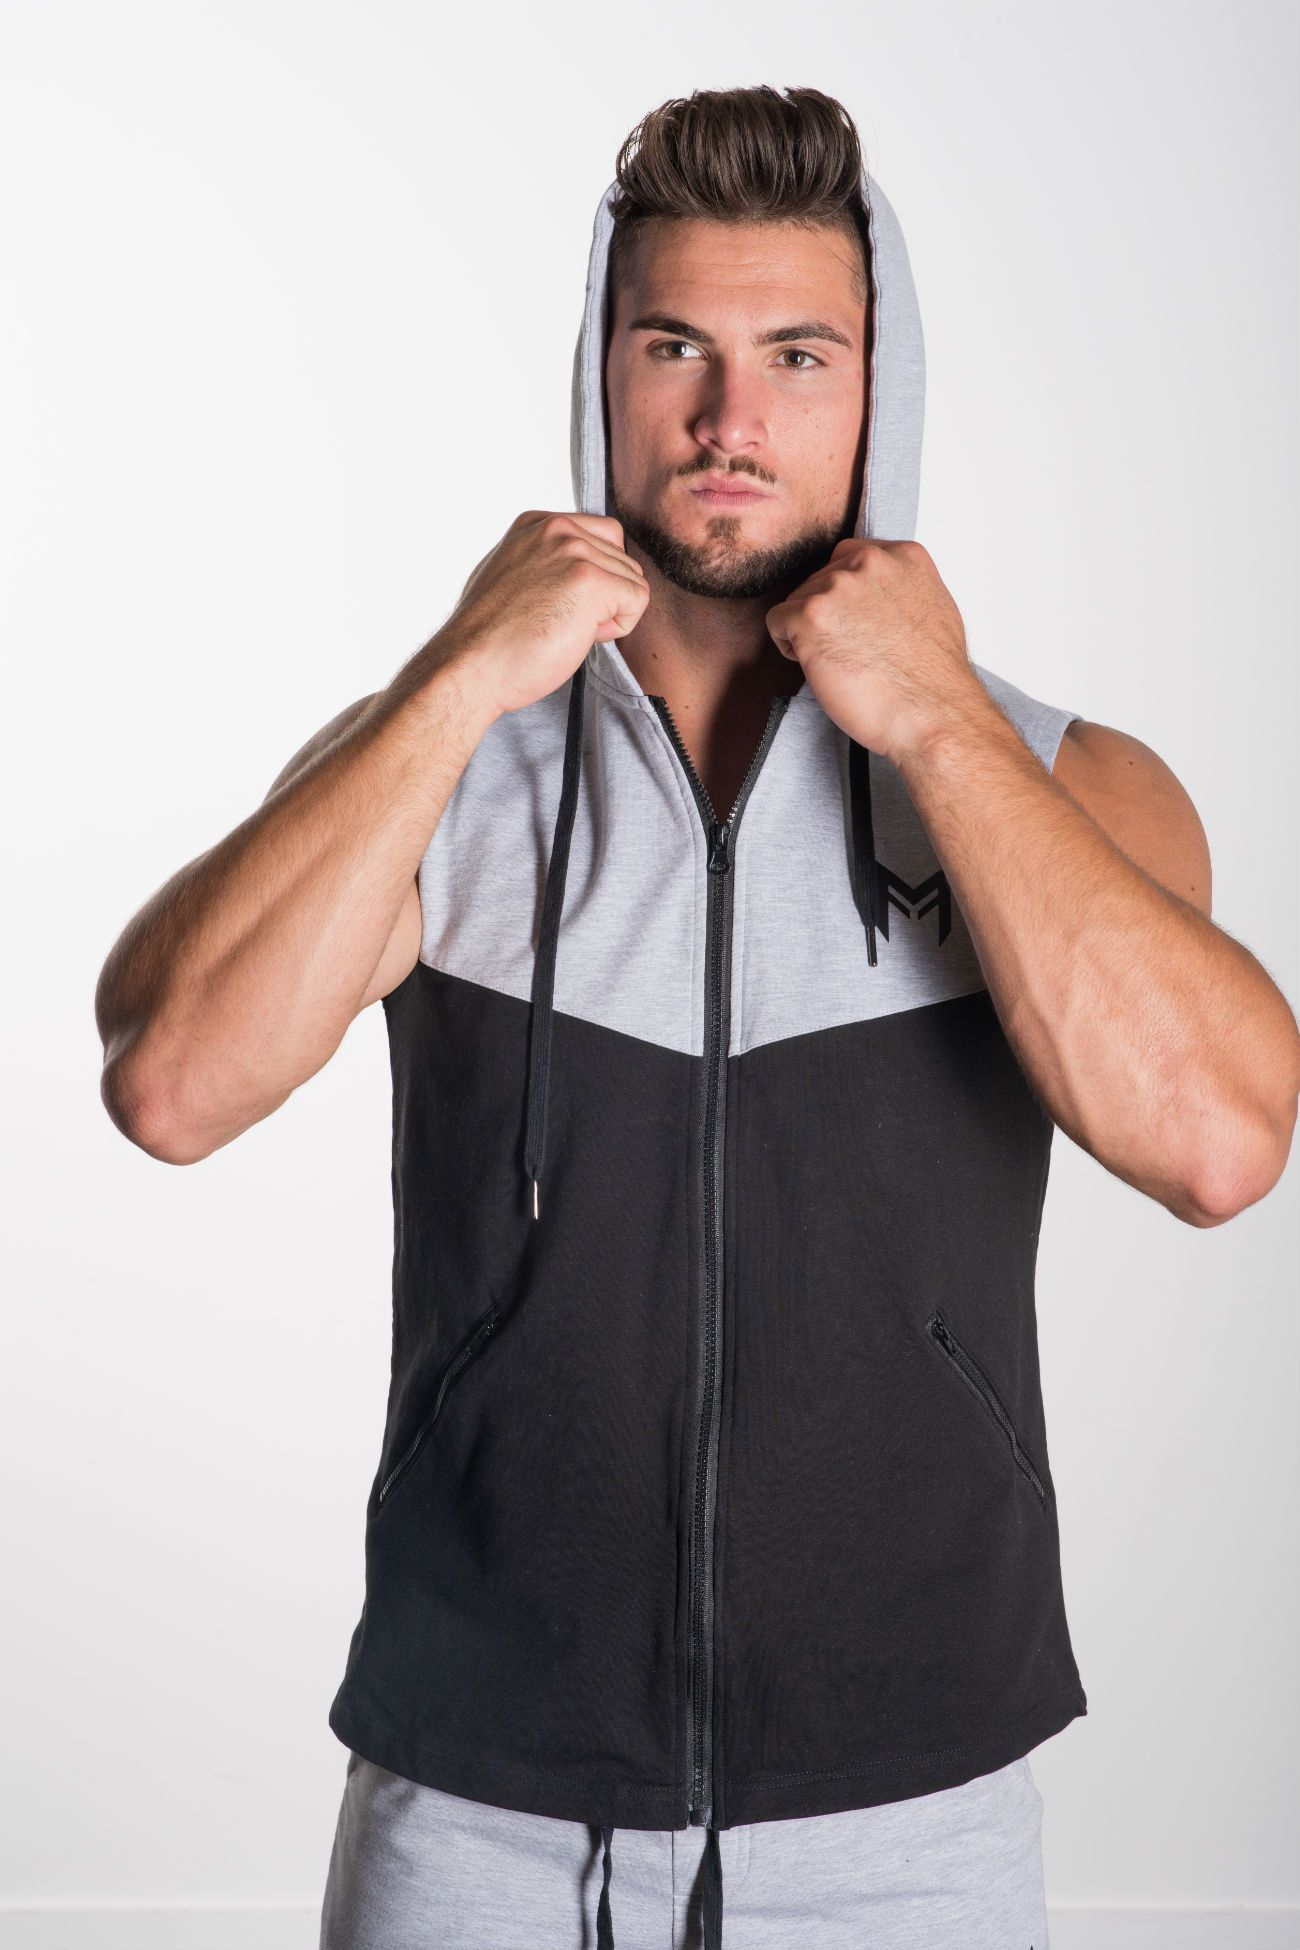 MFF Zip-Up Sleeveless Hoodie - Muscle Fitness Factory